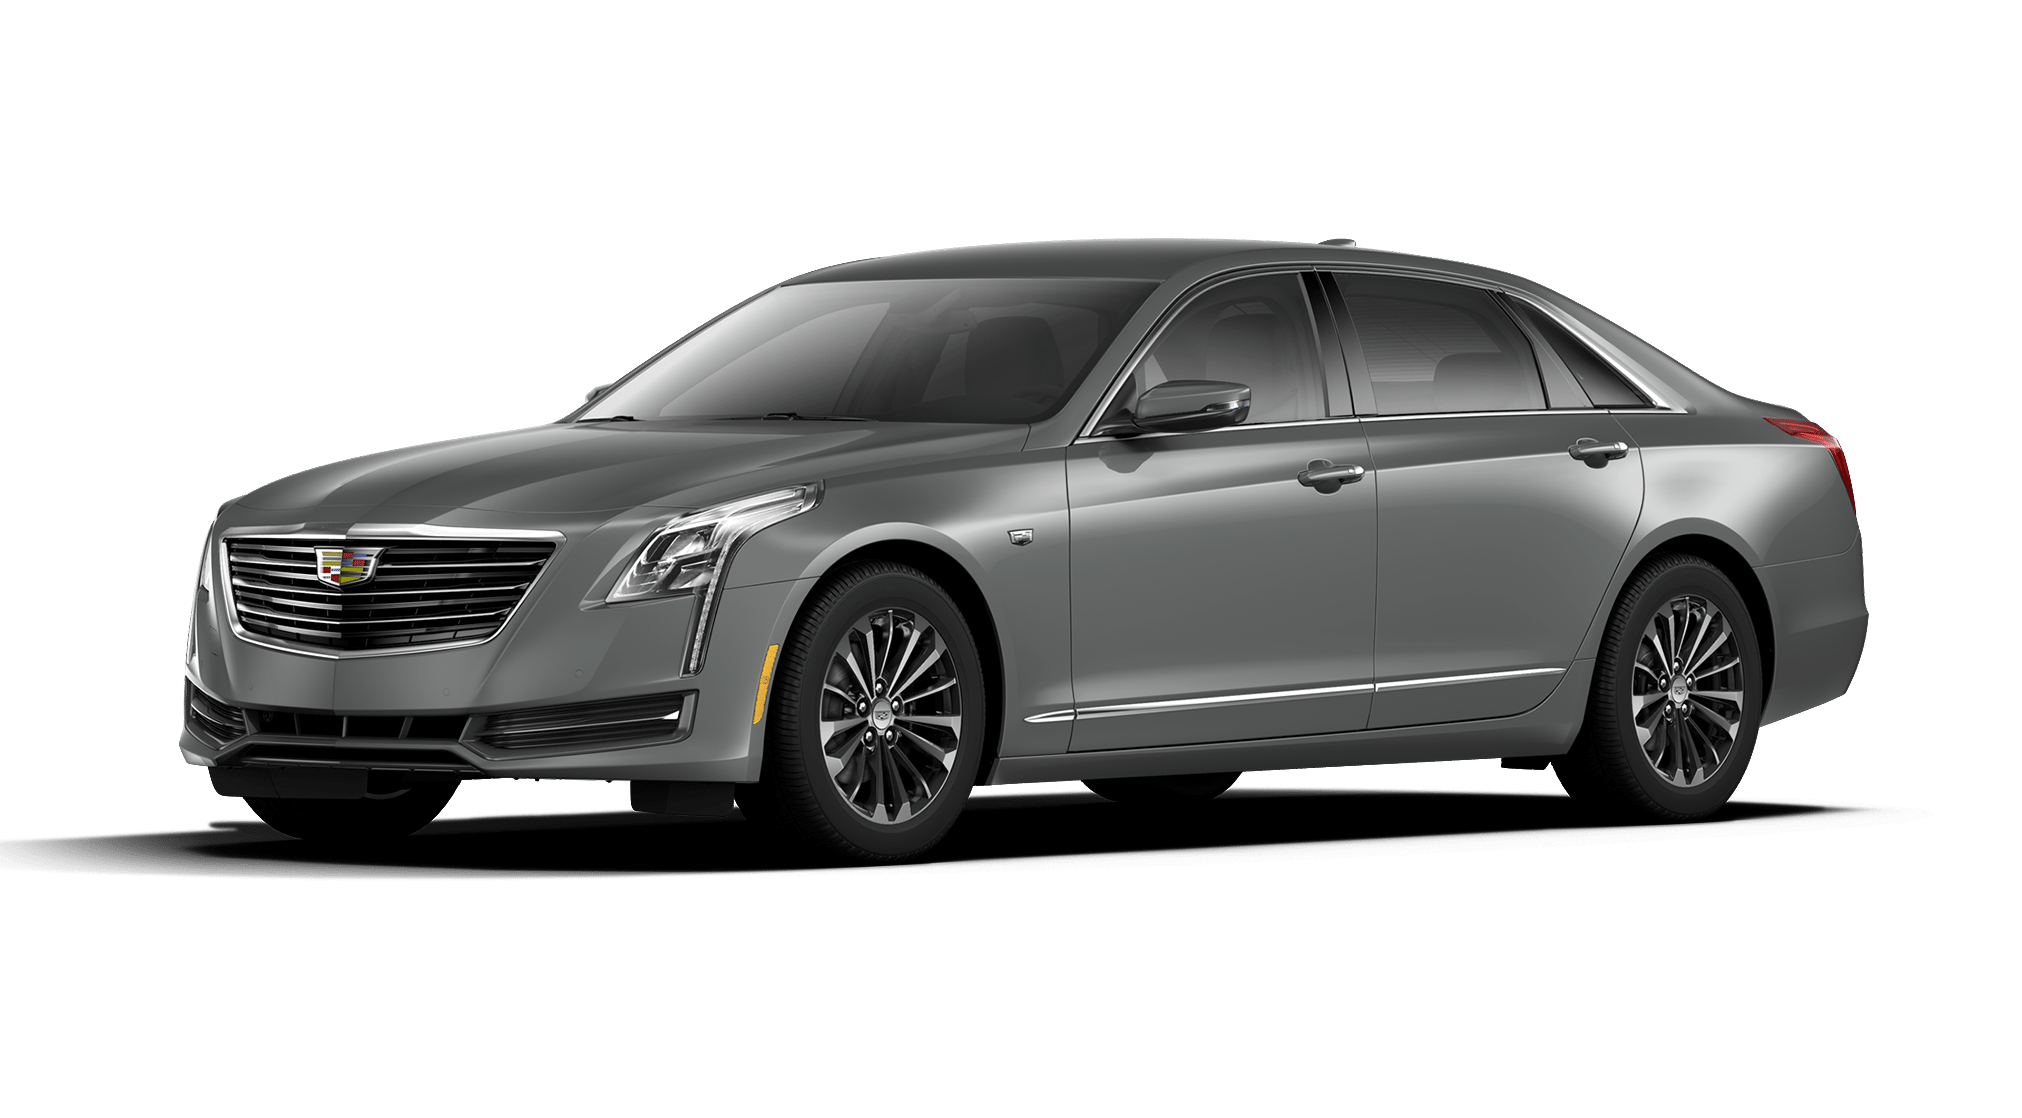 2017 Cadillac CT6 Moonstone